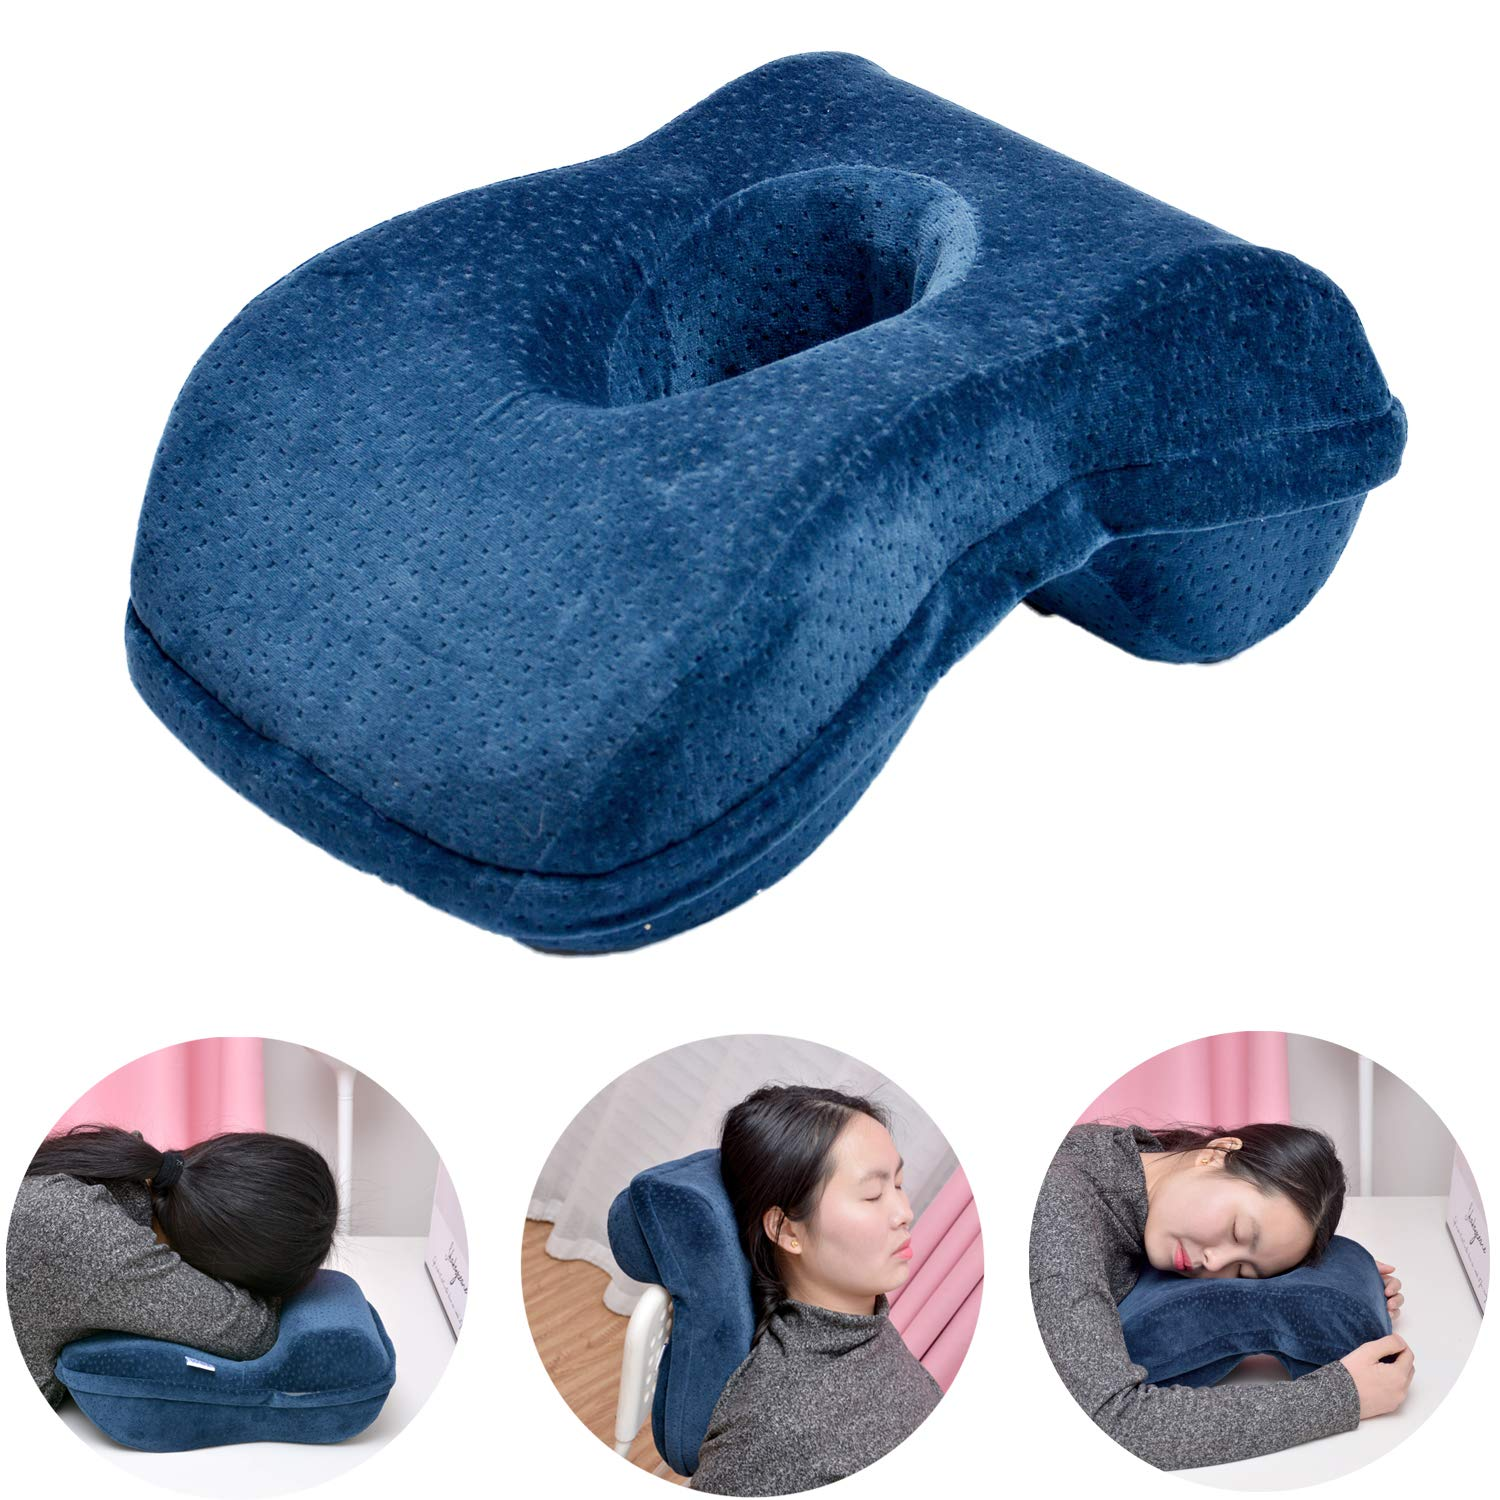 Nap Sleeping Face Pillow - Bamboo Charcoal Pure Memory(slightly hard)Foam Nap Pillow Slow Rebound Desk Pillow with Hollow Design for Face Down pillow Sleeper Back Support, Removable Washable Velvet Co